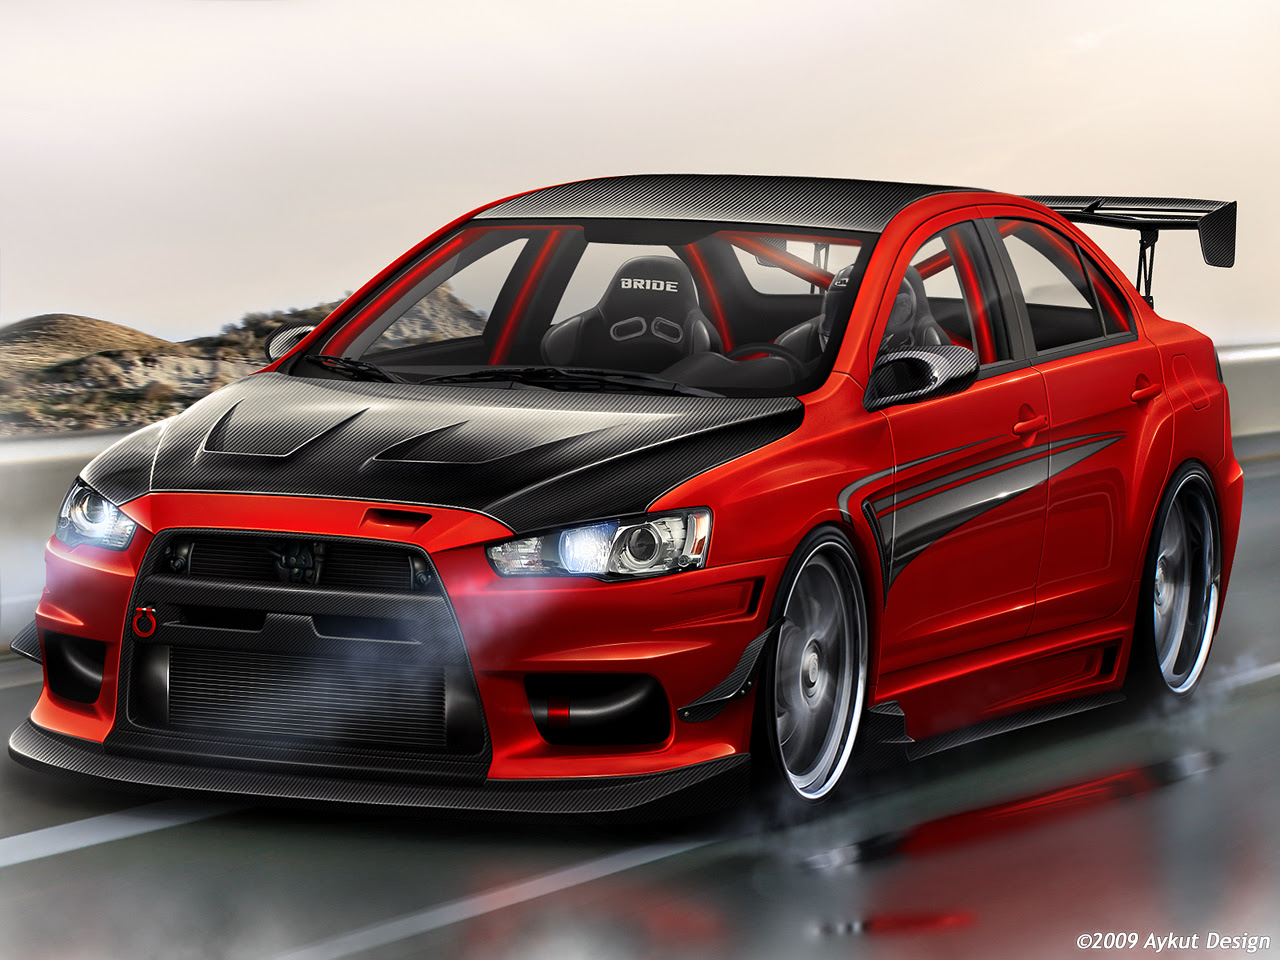 Modifikasi Mobil Mitsubishi Lancer Evolution Ottomania86